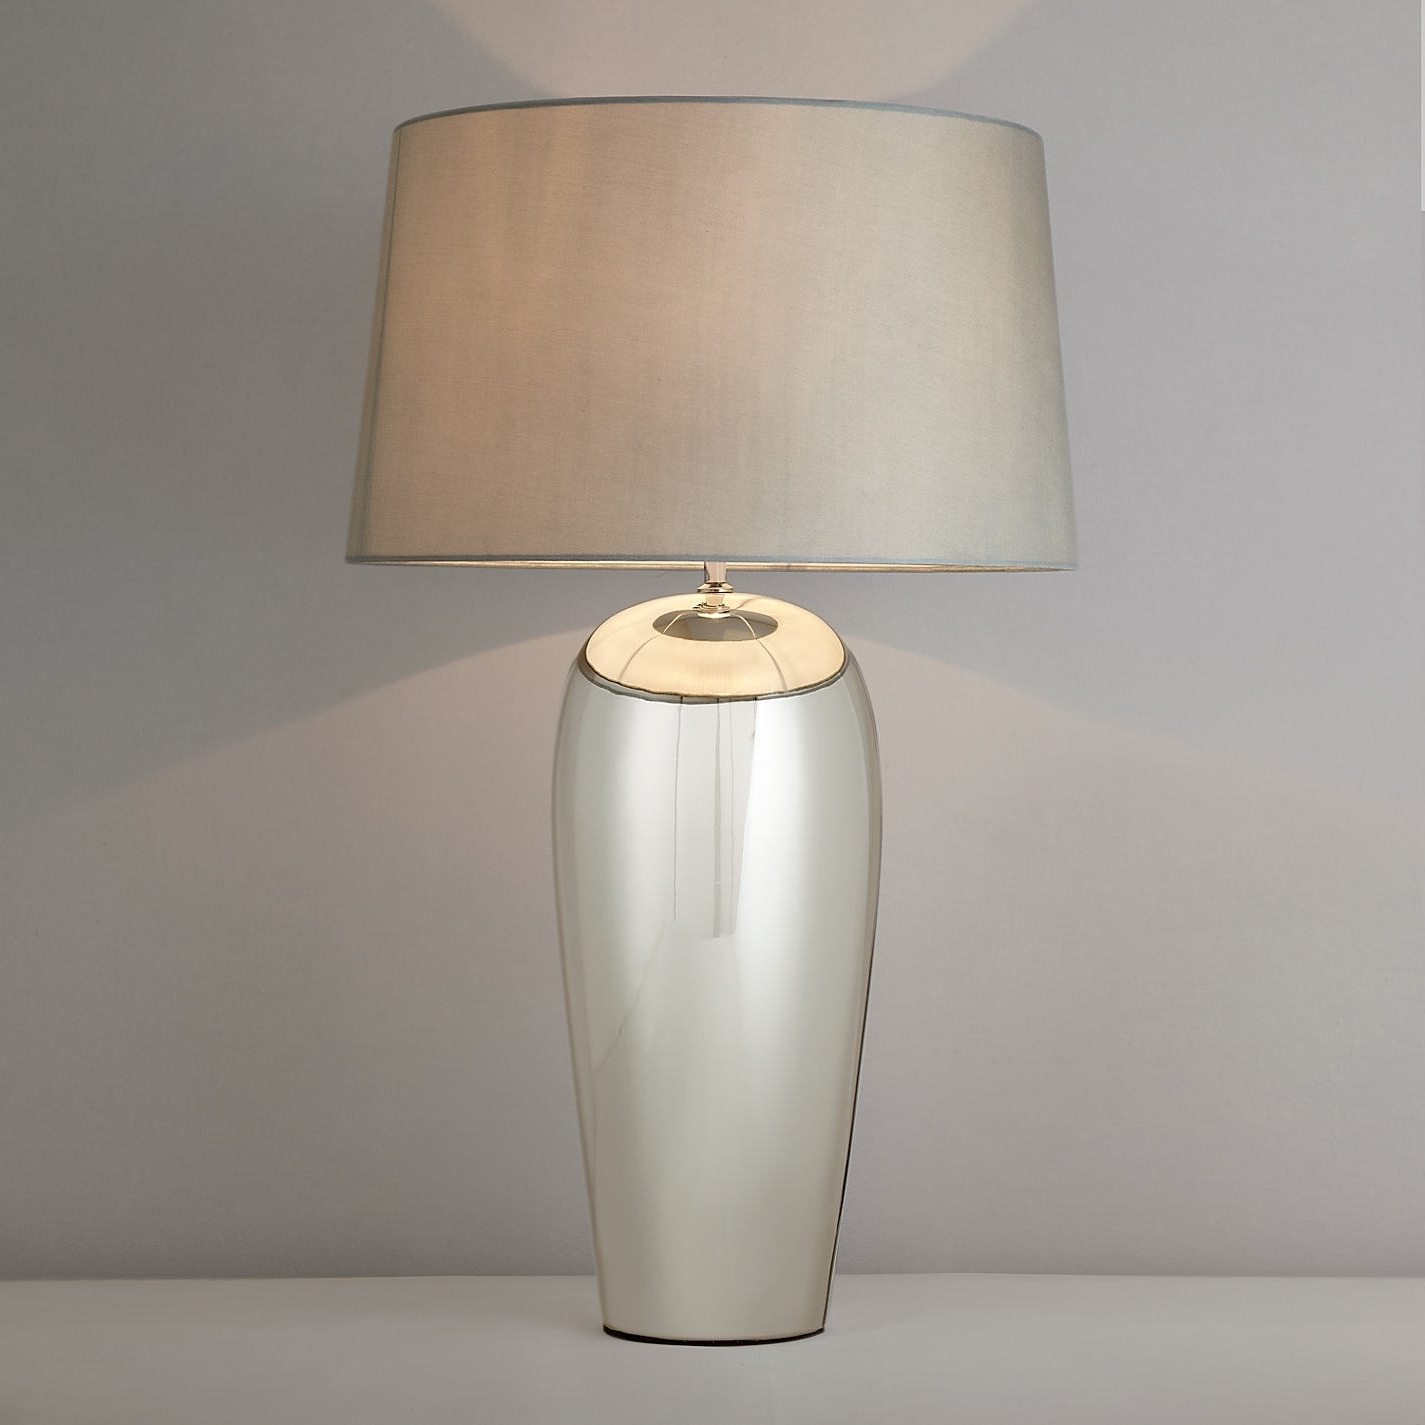 Well Liked Gallery John Lewis Table Lamps – Badotcom Intended For John Lewis Table Lamps For Living Room (View 7 of 20)